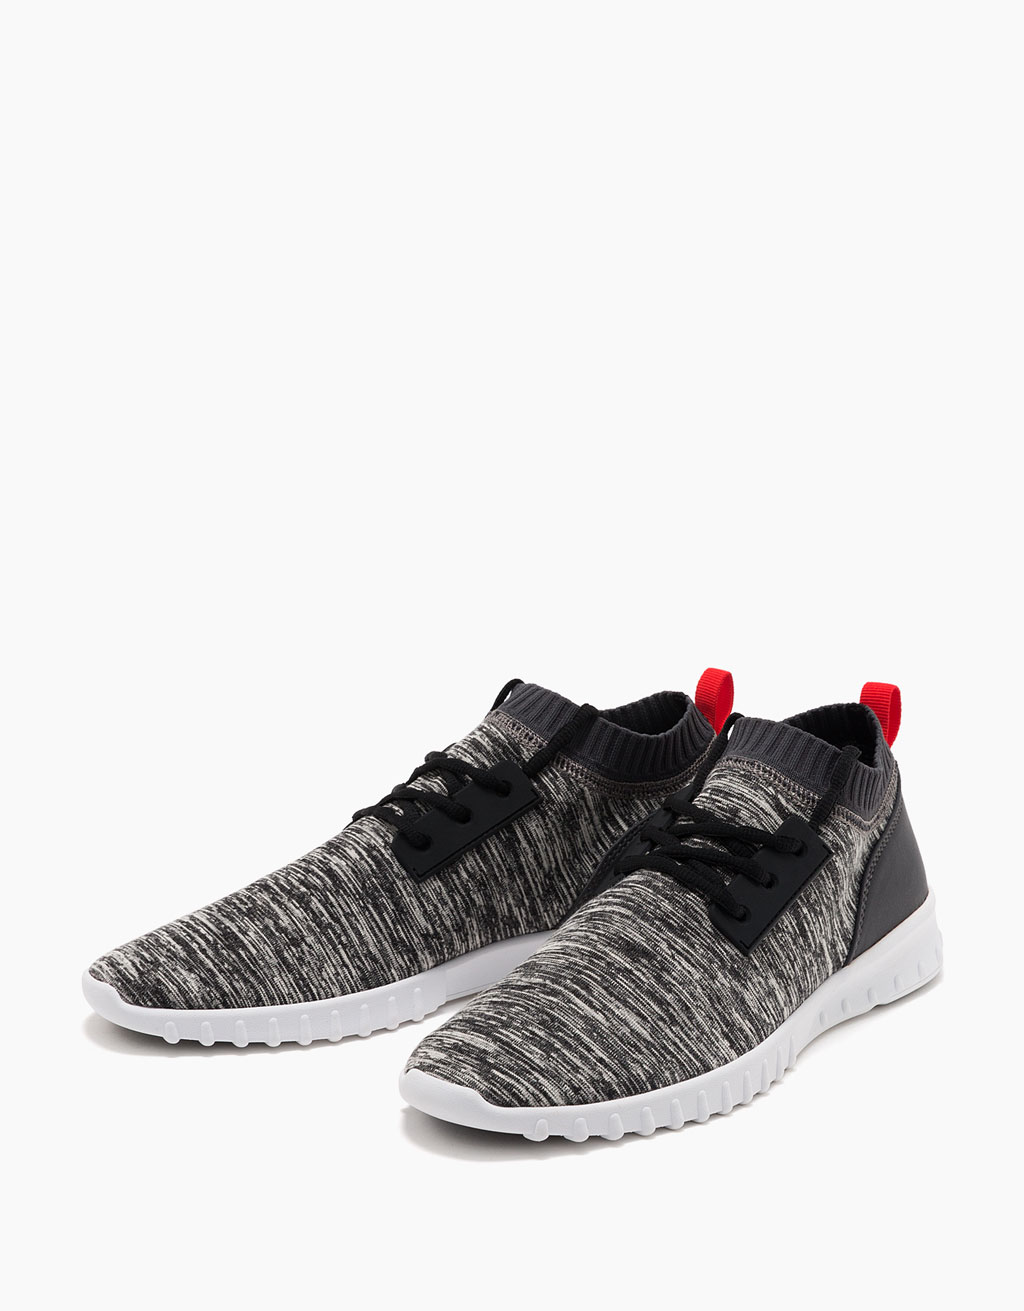 Men's contrast lace-up sneakers with top stitching